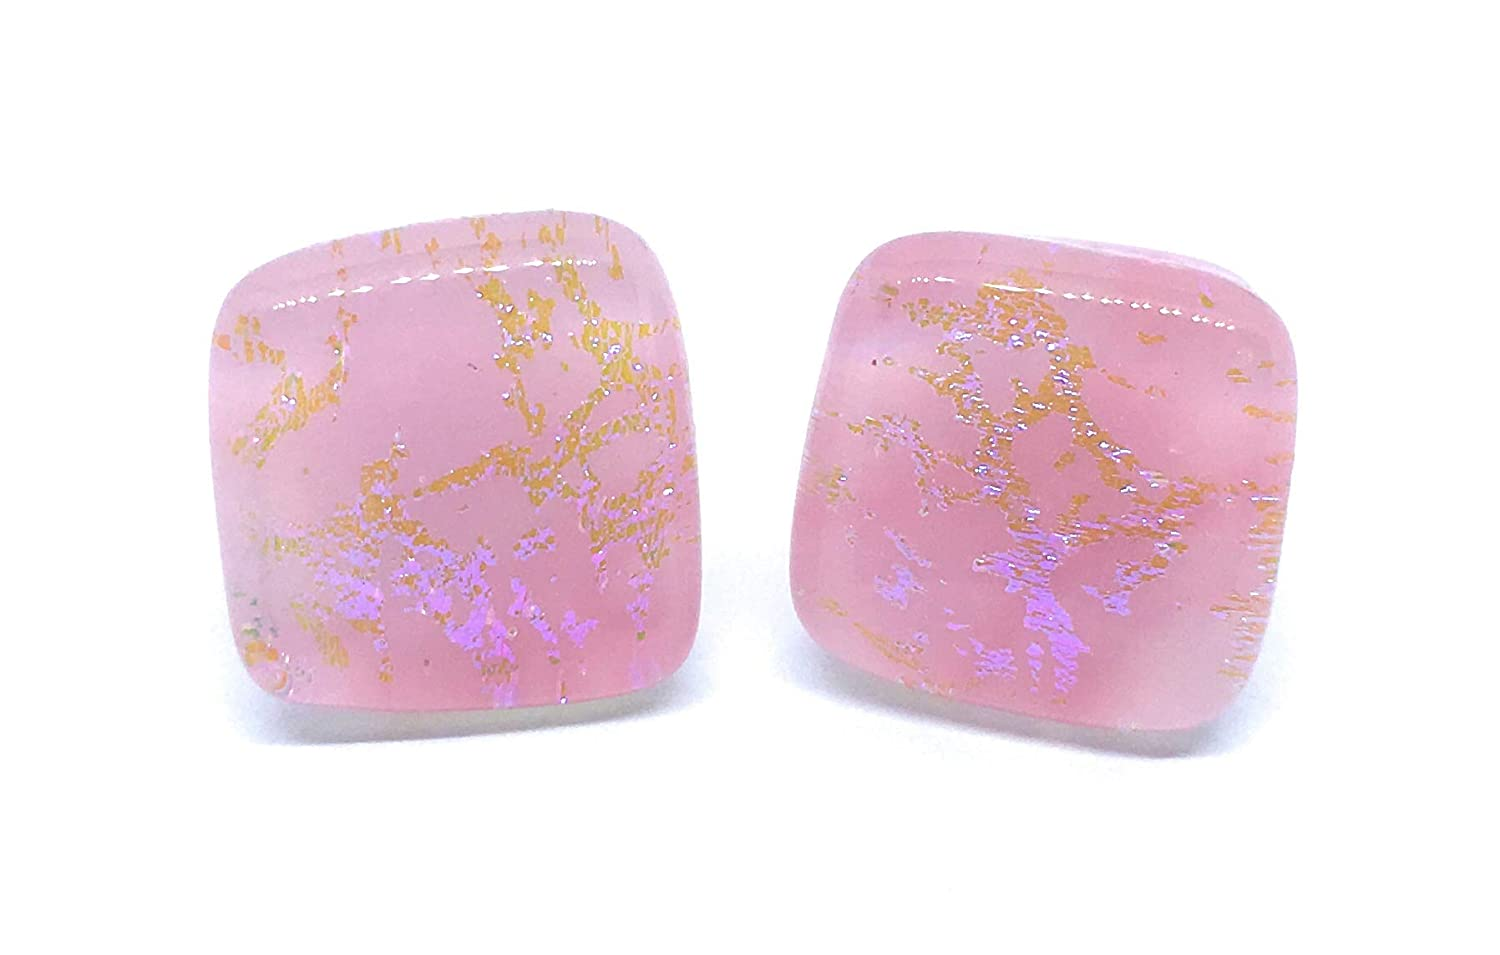 Presents for Women 1.2cm x 1.2cm with Silver Plated Studs Includes Gift Box Gifts for Women Handmade Dichroic Glass Earrings in Pink